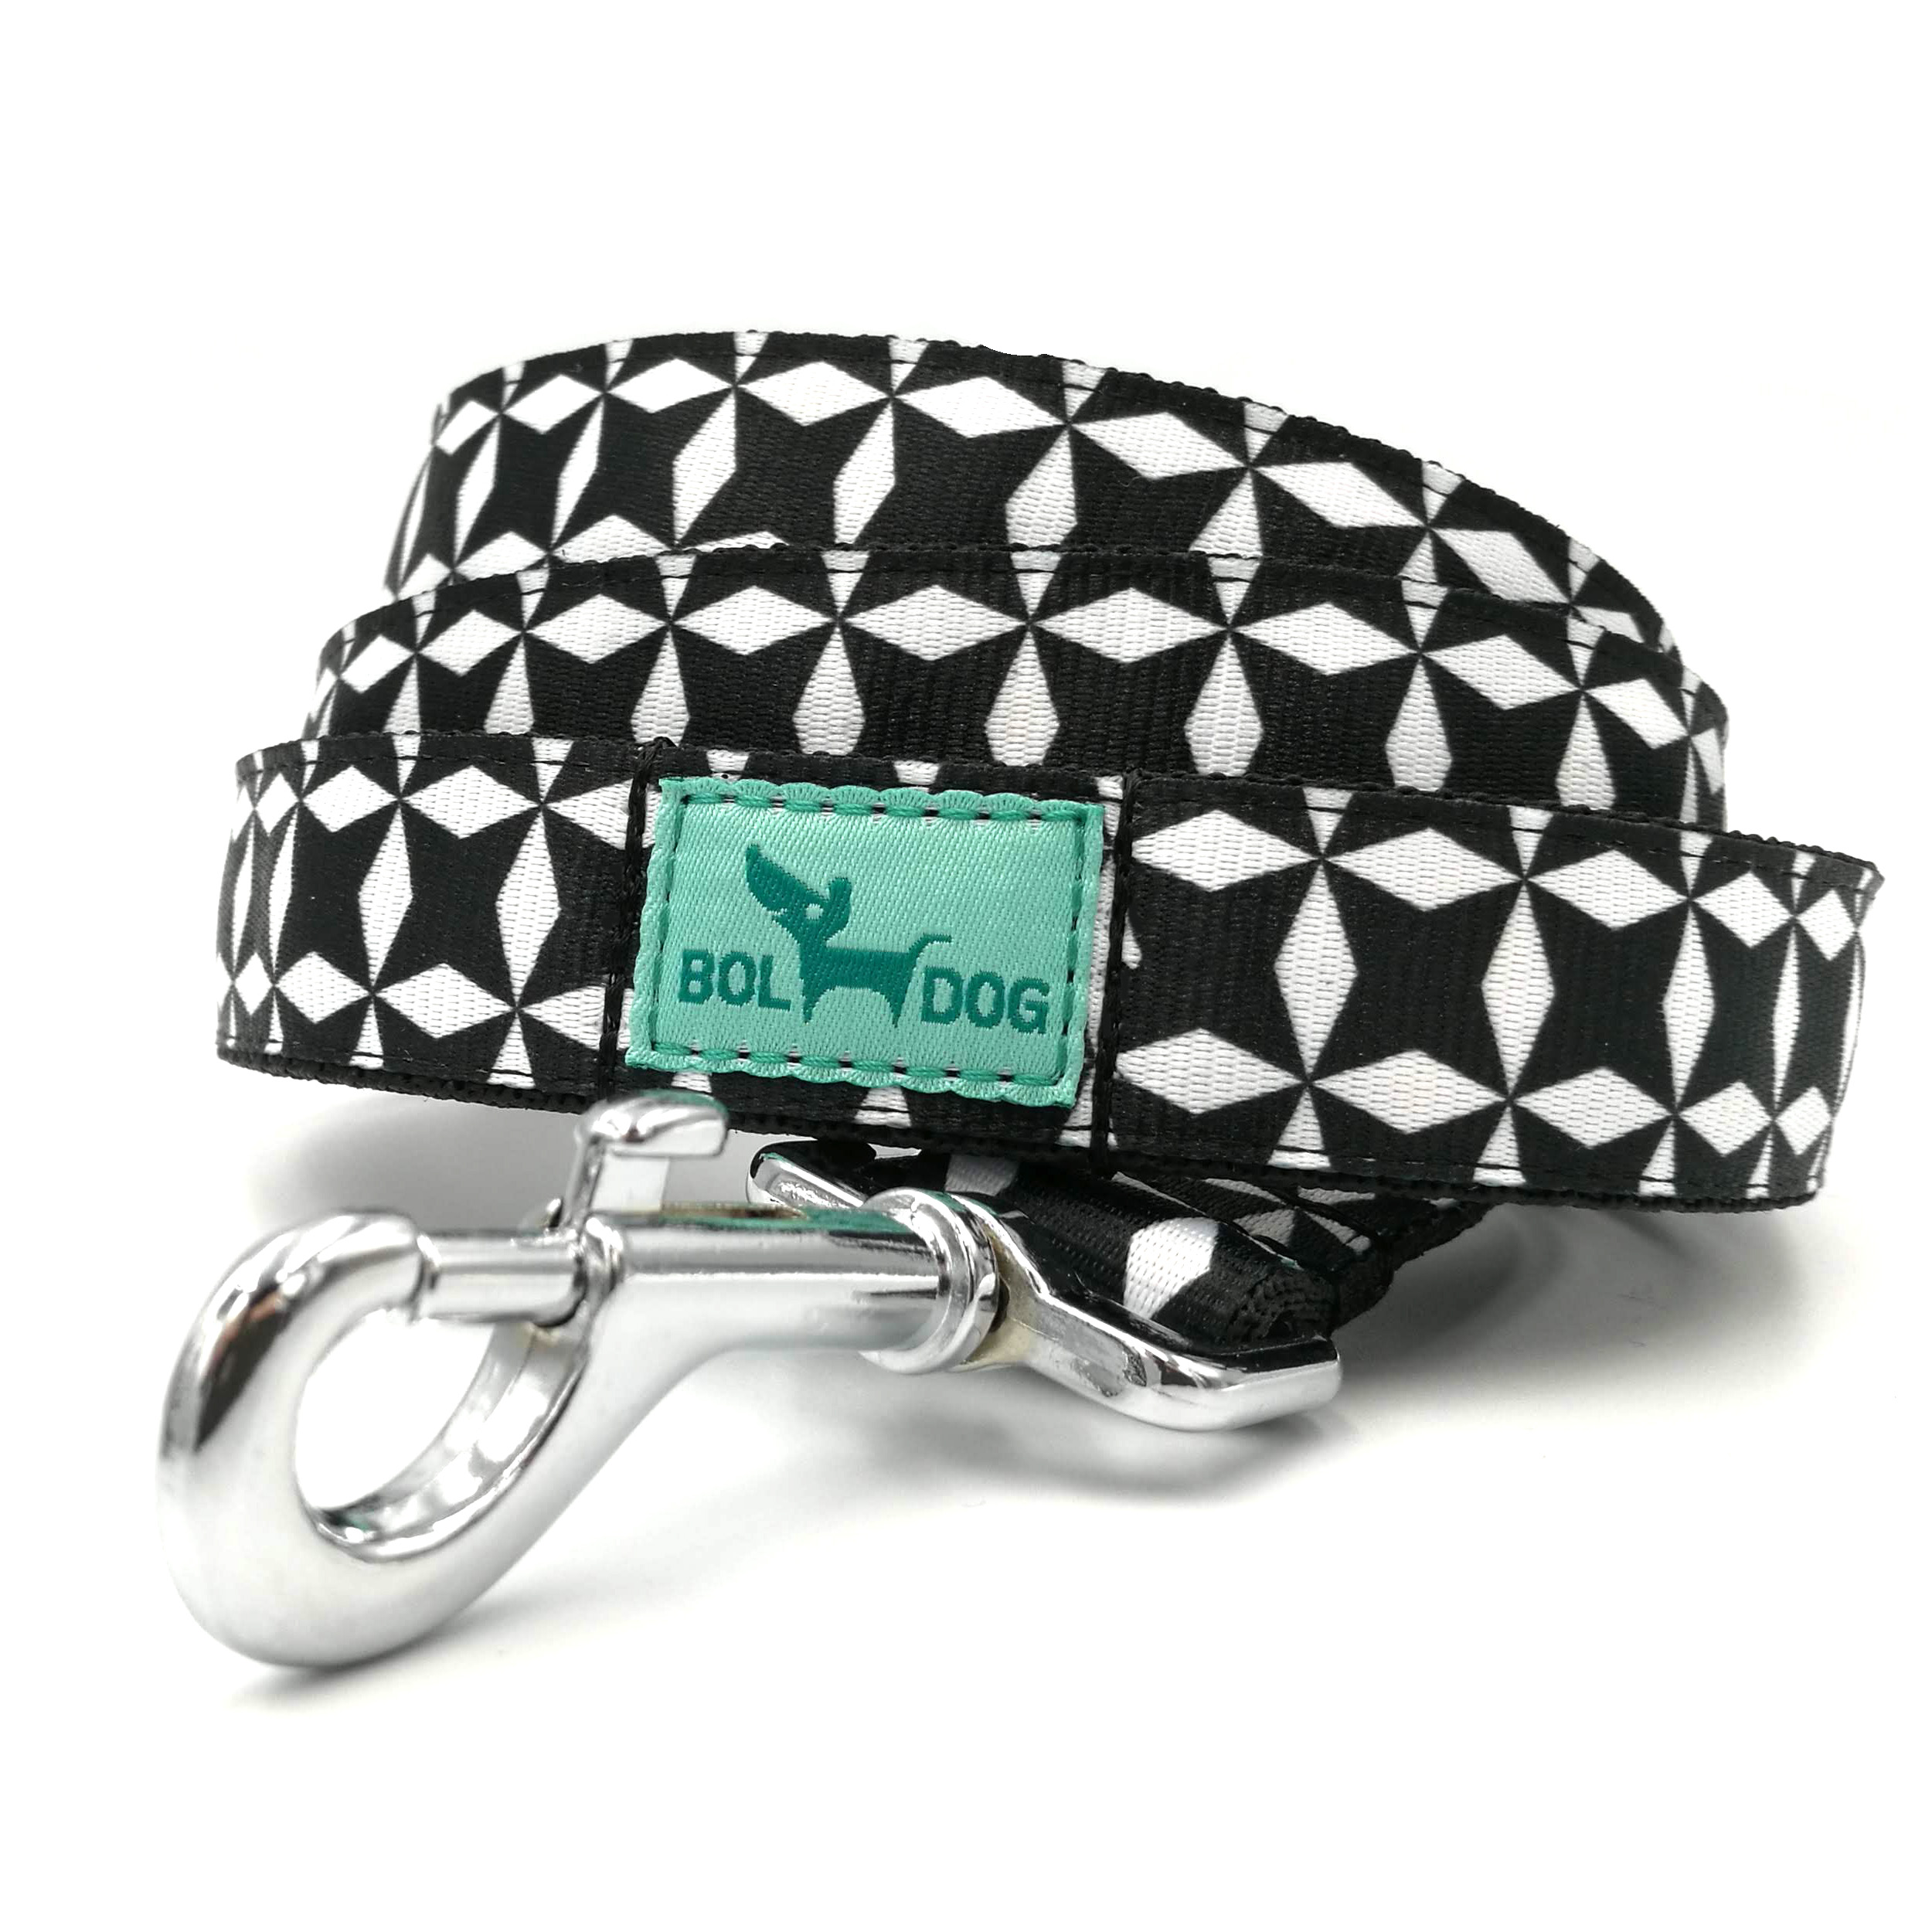 Black and white checked patterned dog leash